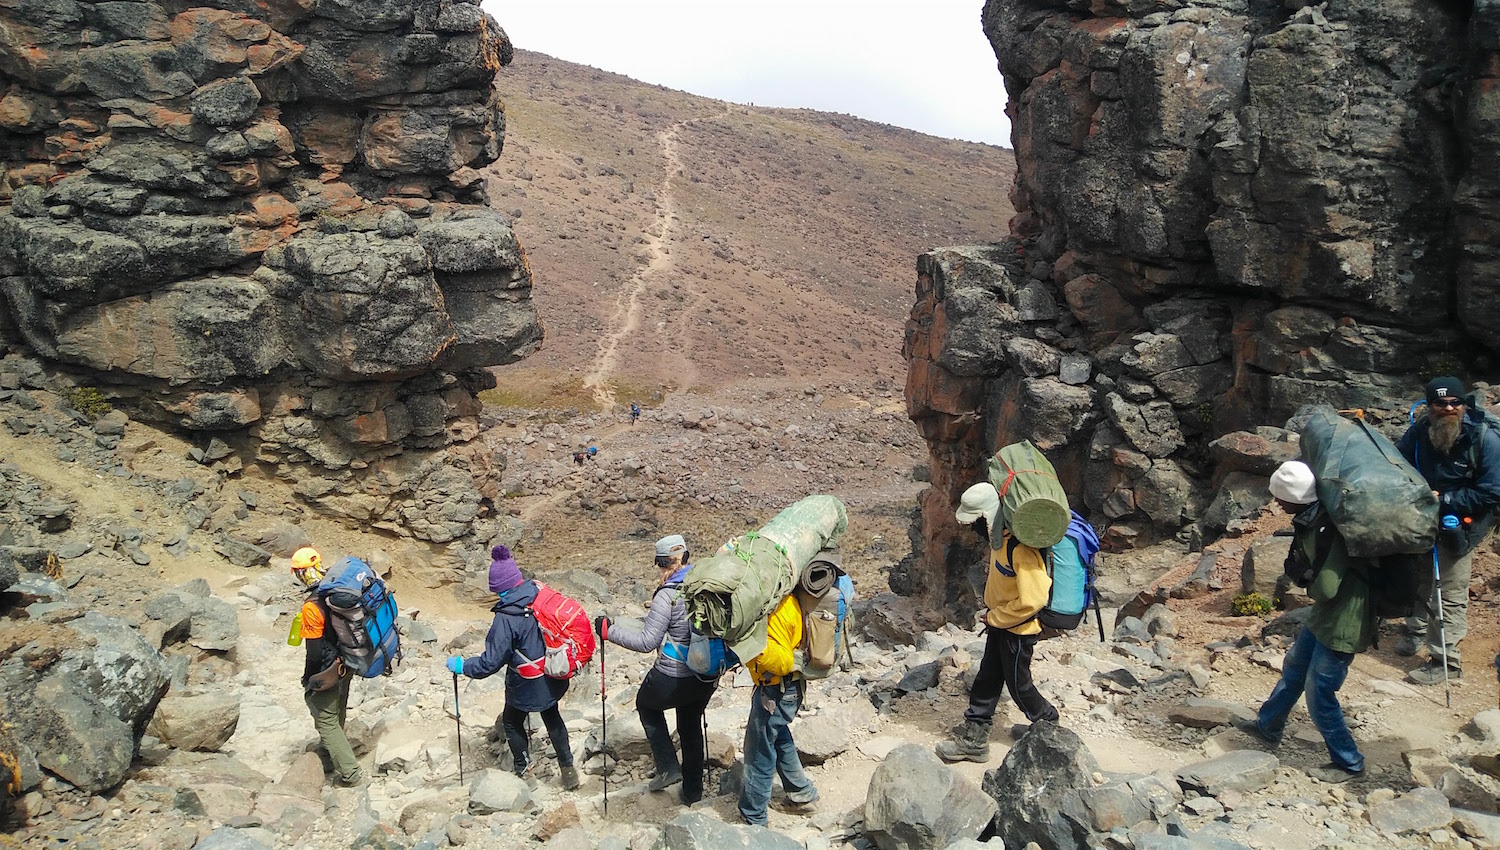 We descended from Lava Tower. The trail stretched over the horizon. Photo by teammember Nico Rogers.